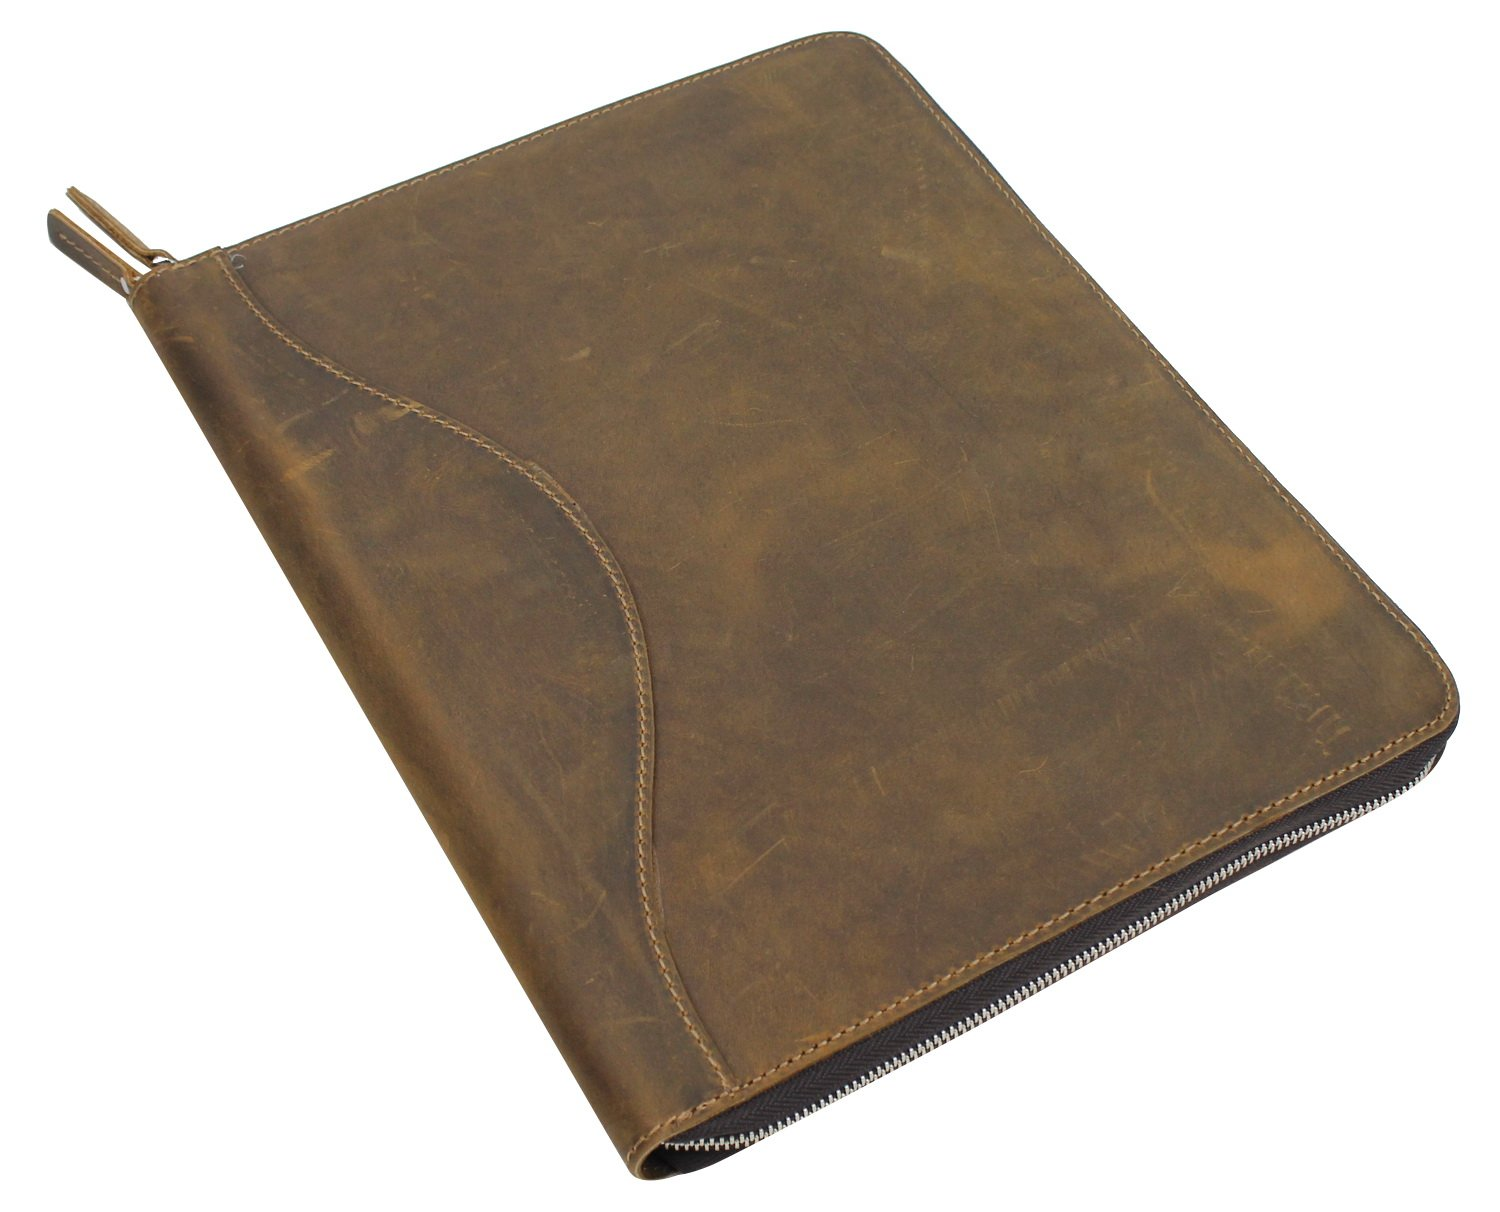 Cowhide Leather Large Portfolio Business Folder. LH08. Vintage Brown